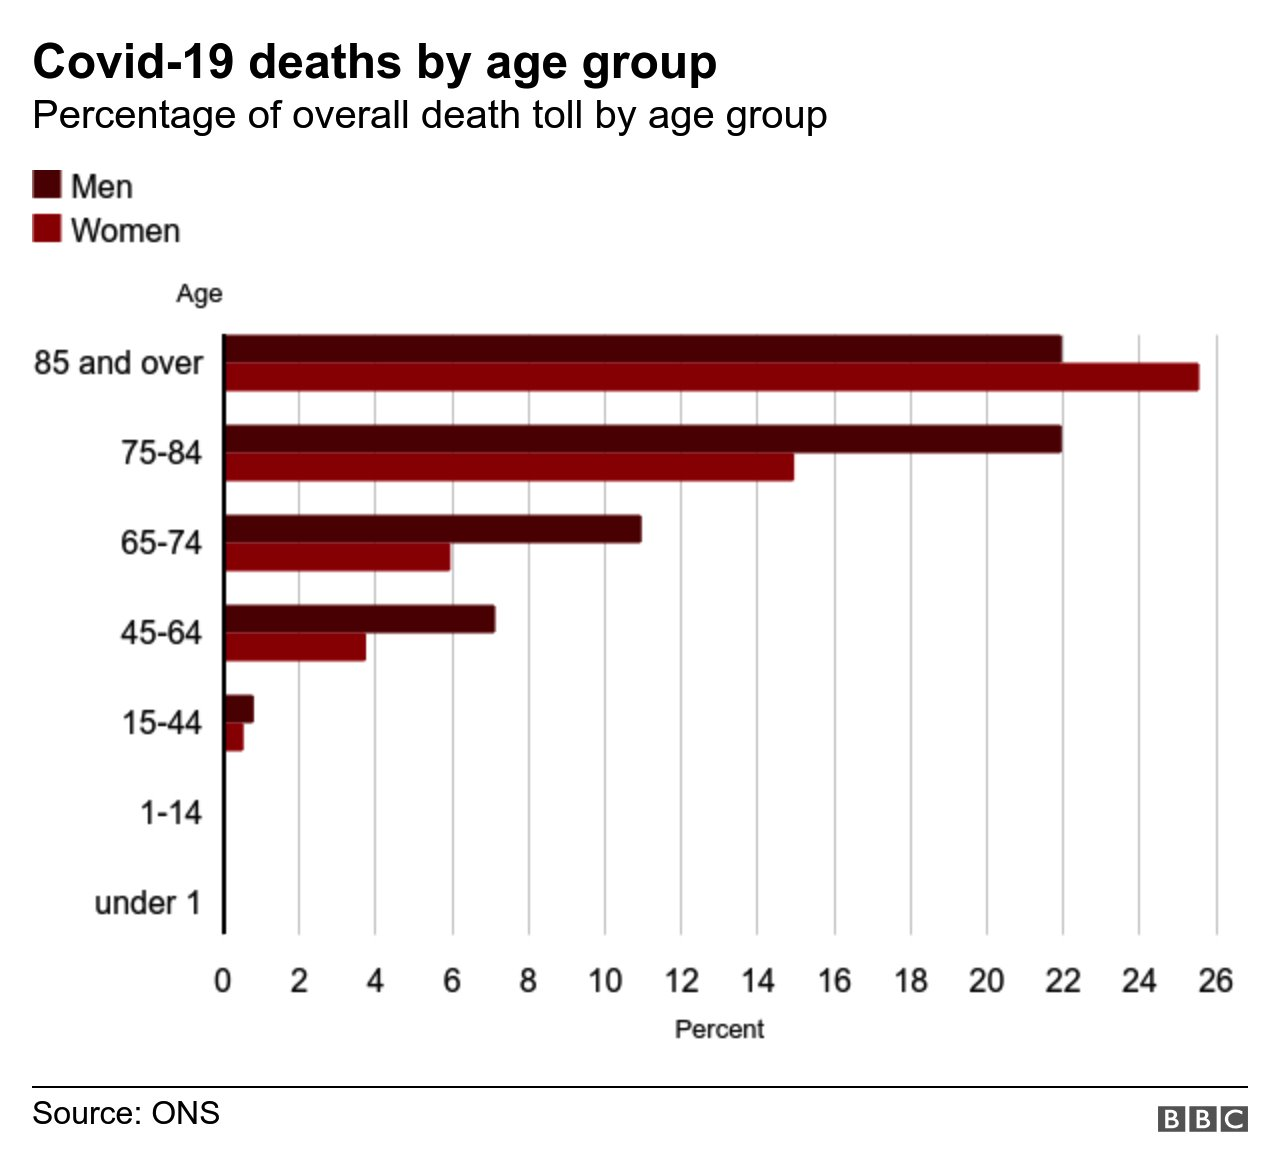 Death toll by age group